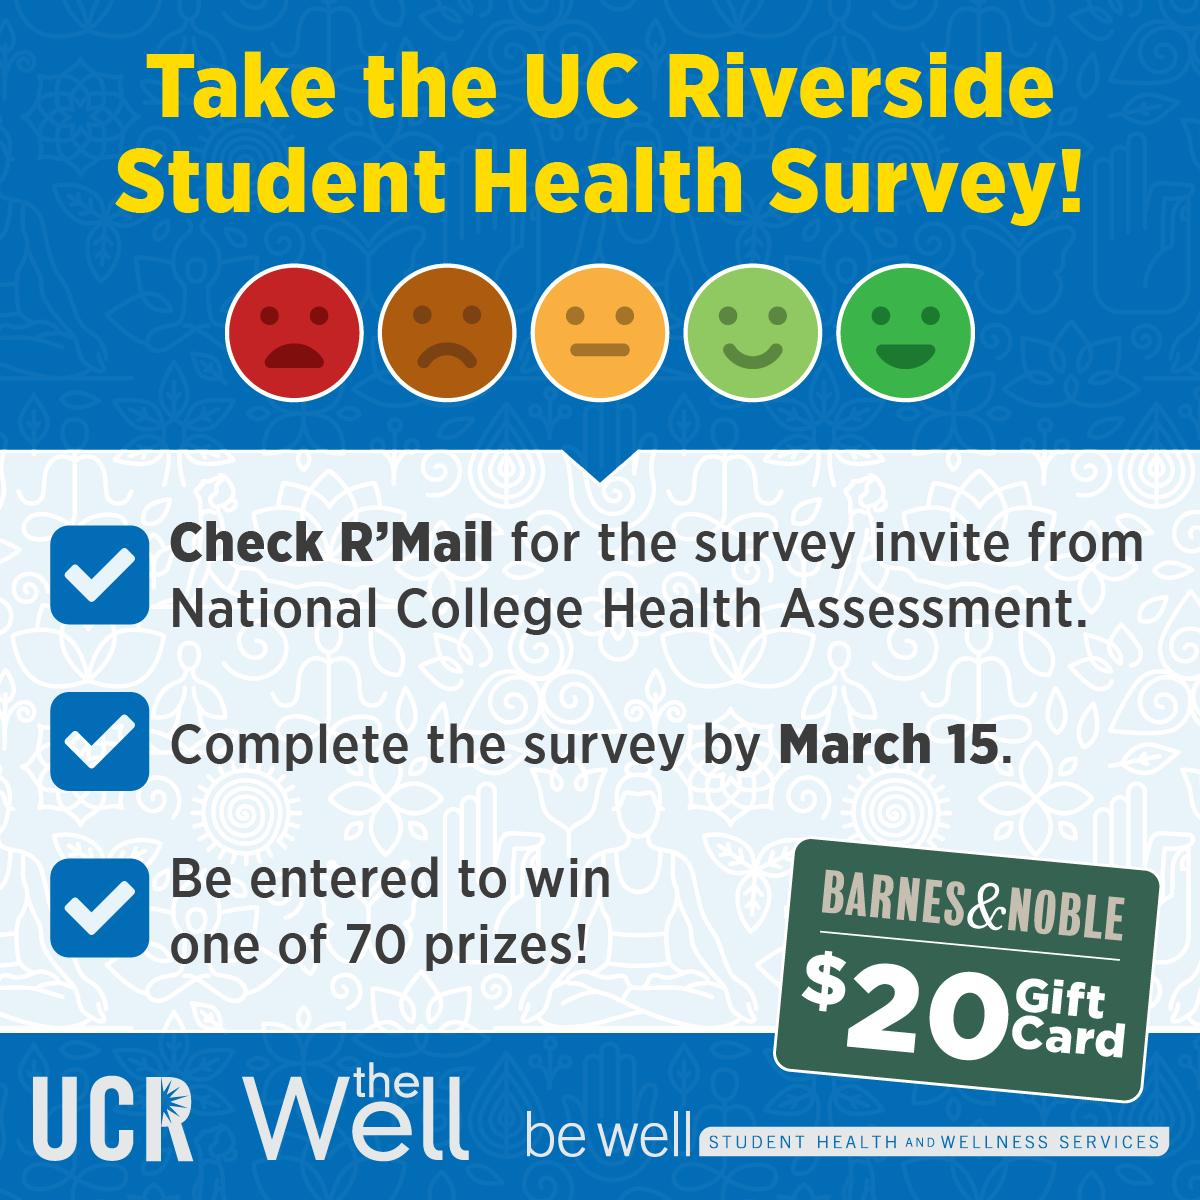 Student Health Behavior Survey. All #UCR students who complete the survey are automatically entered into a raffle drawing for one of over 90 prizes, including #BarnesNoble gift cards.